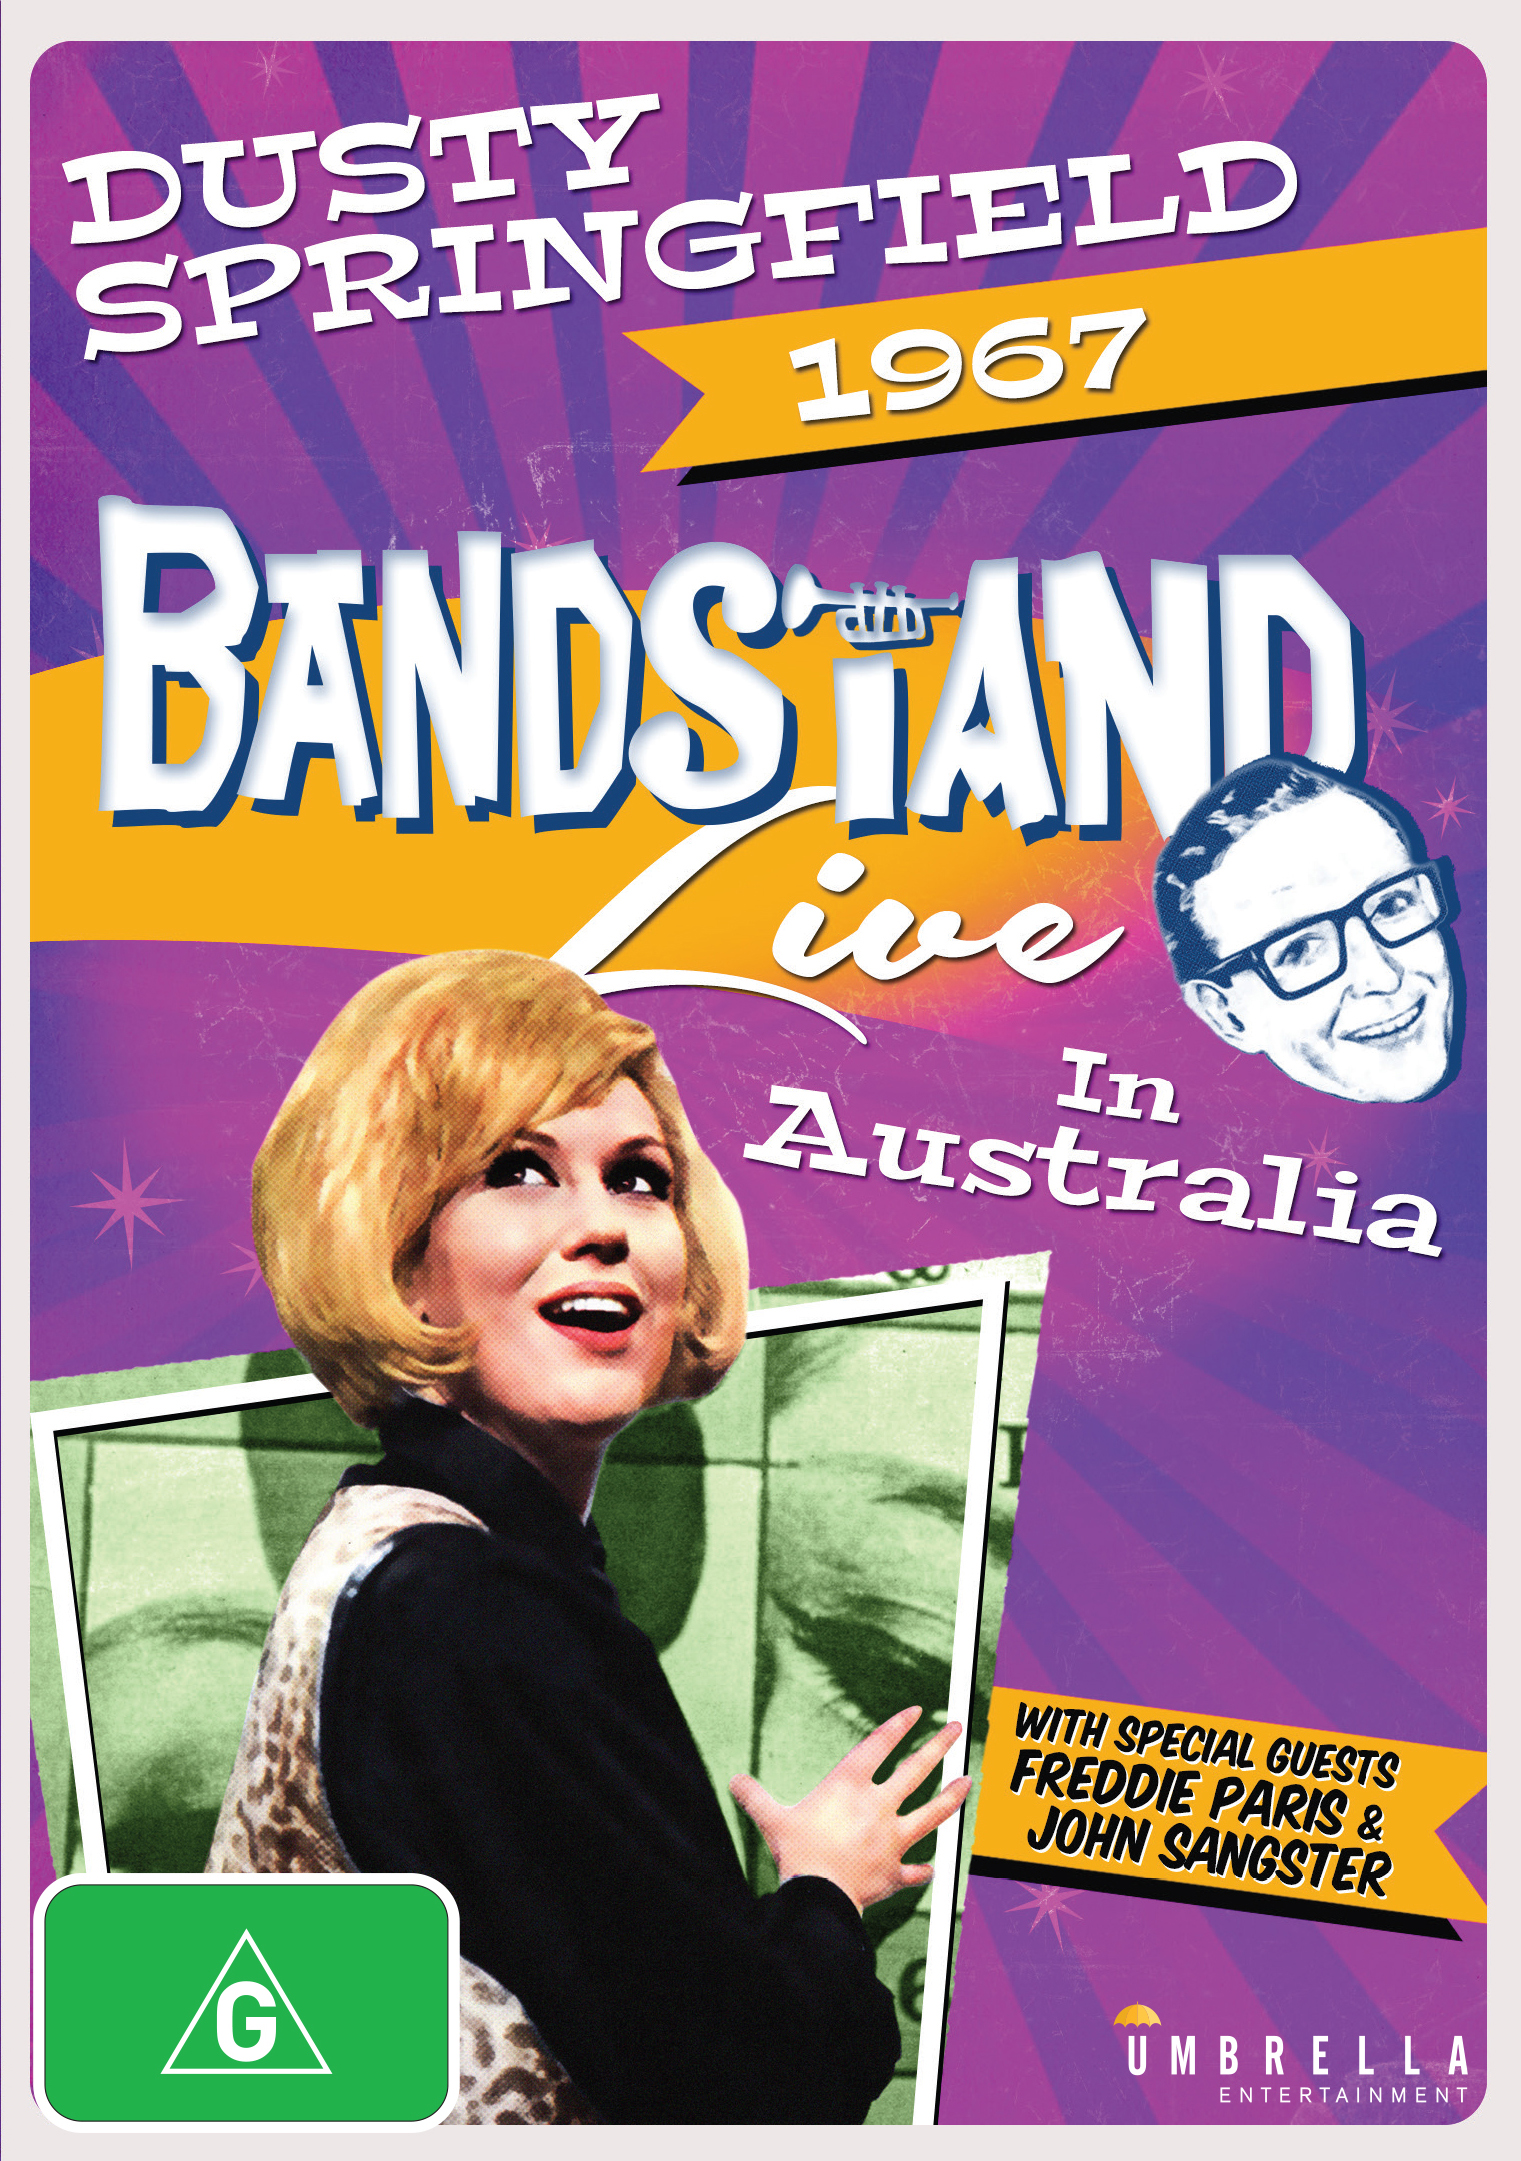 Bandstand Dusty Springfield Live 1967